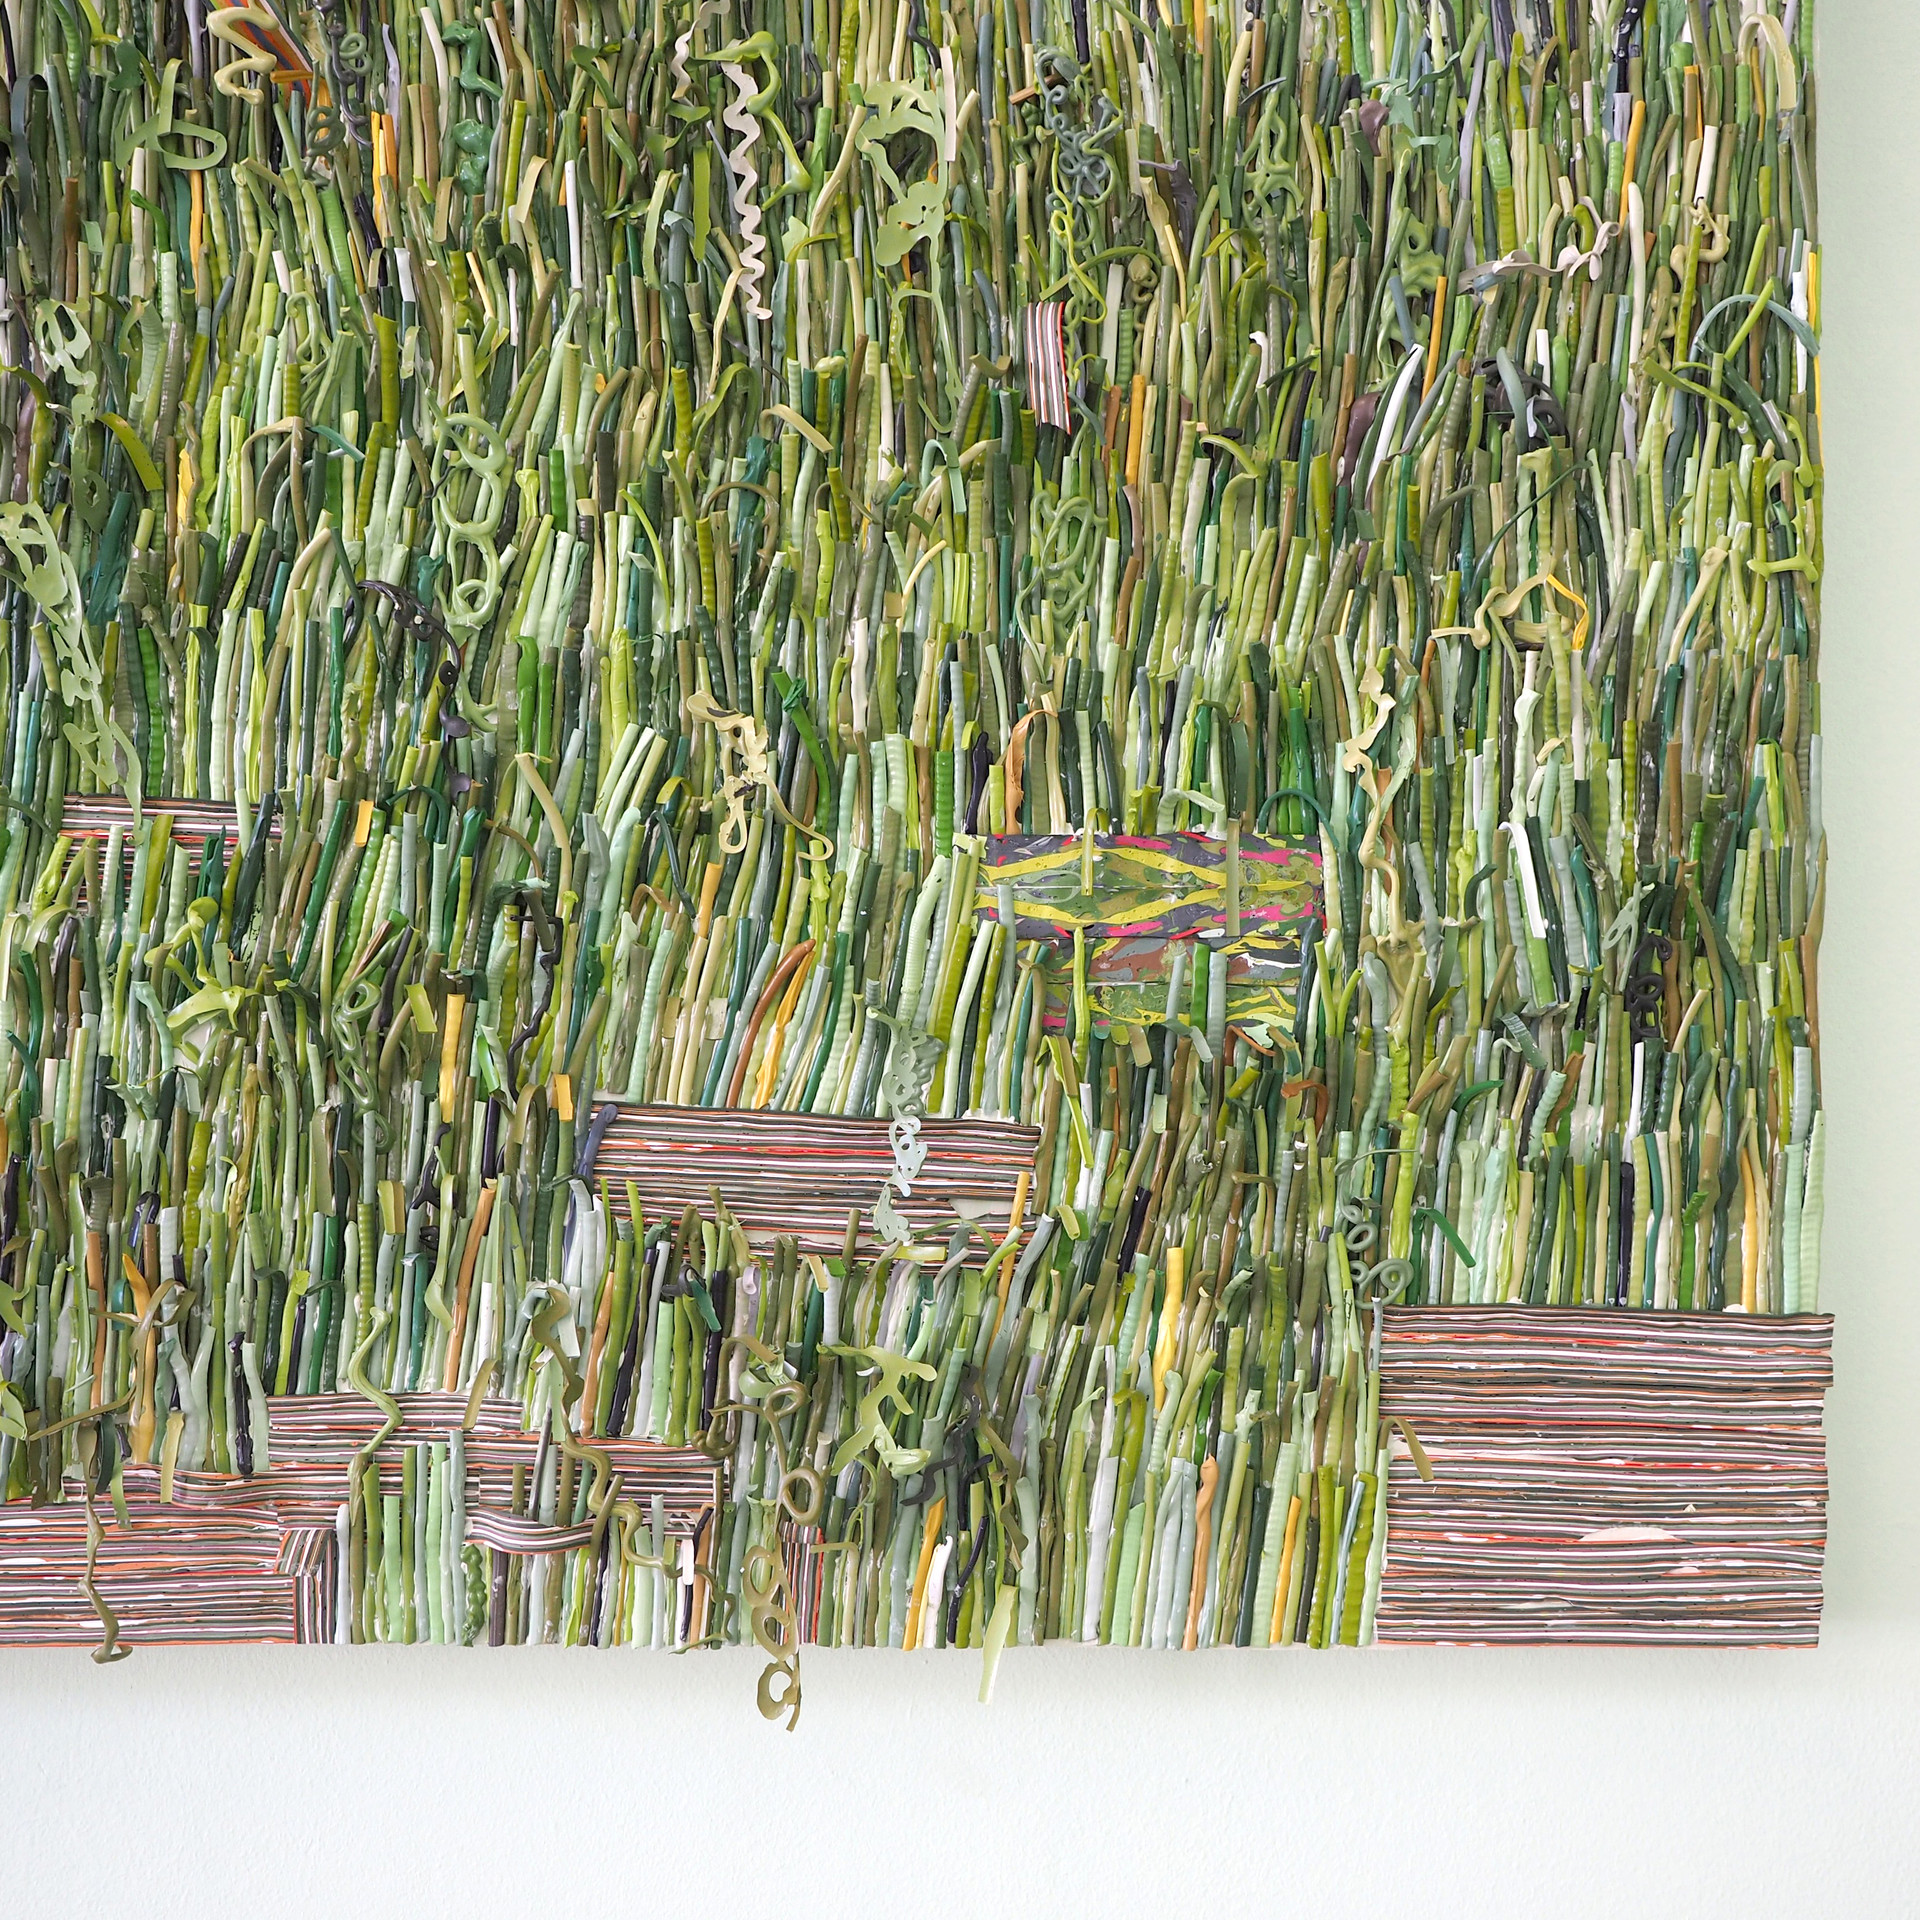 Detail of The Grass is Greener Made Out of Paint (2018)